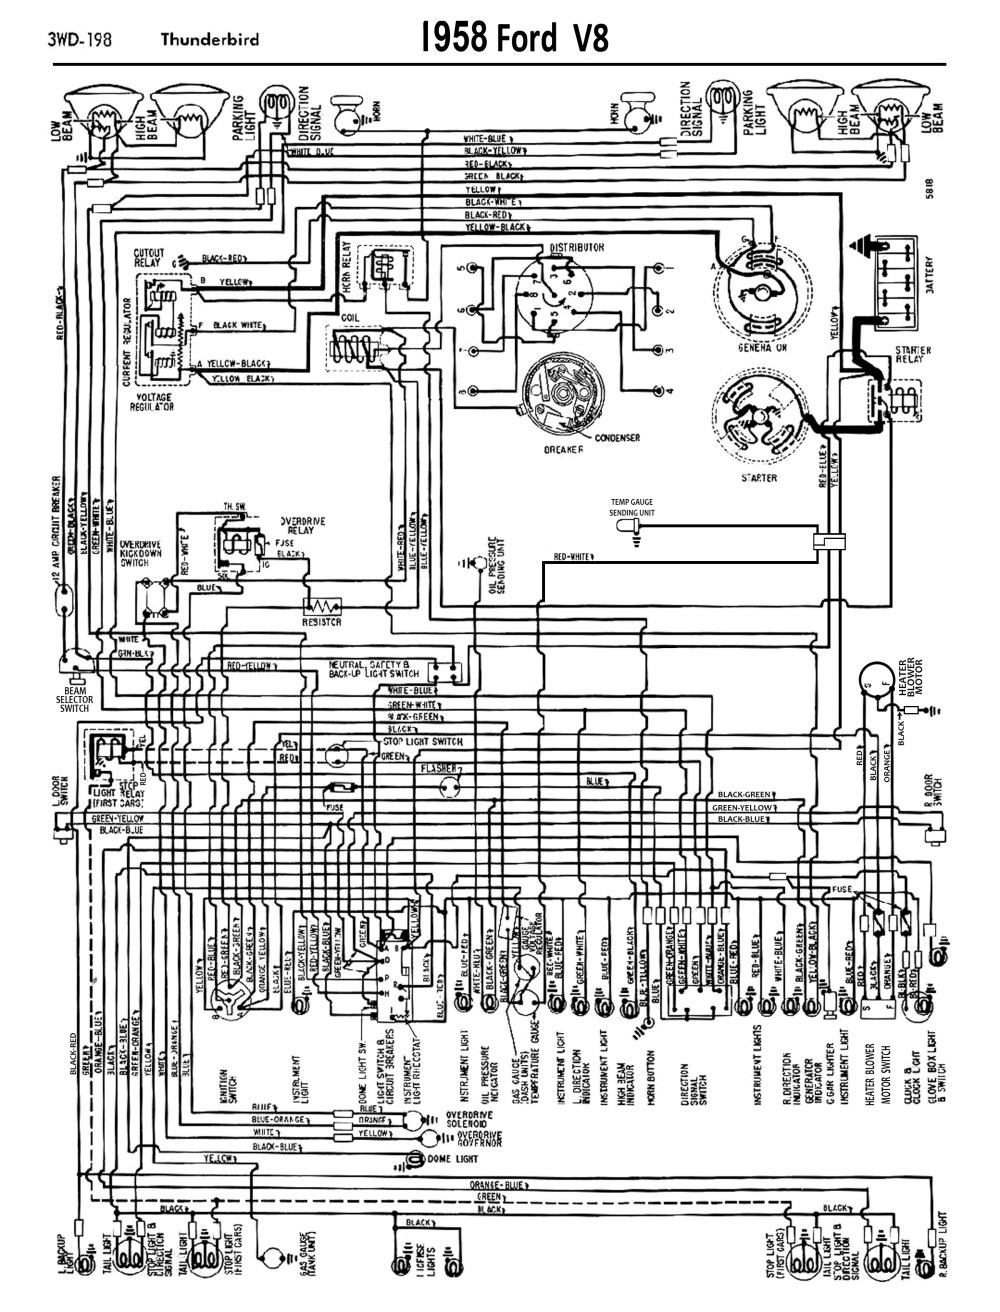 medium resolution of 1958 edsel wiring diagram schematic diagrams rh 1 fitness mit trampolin de 1959 edsel 1958 edsel ranger wiring diagram